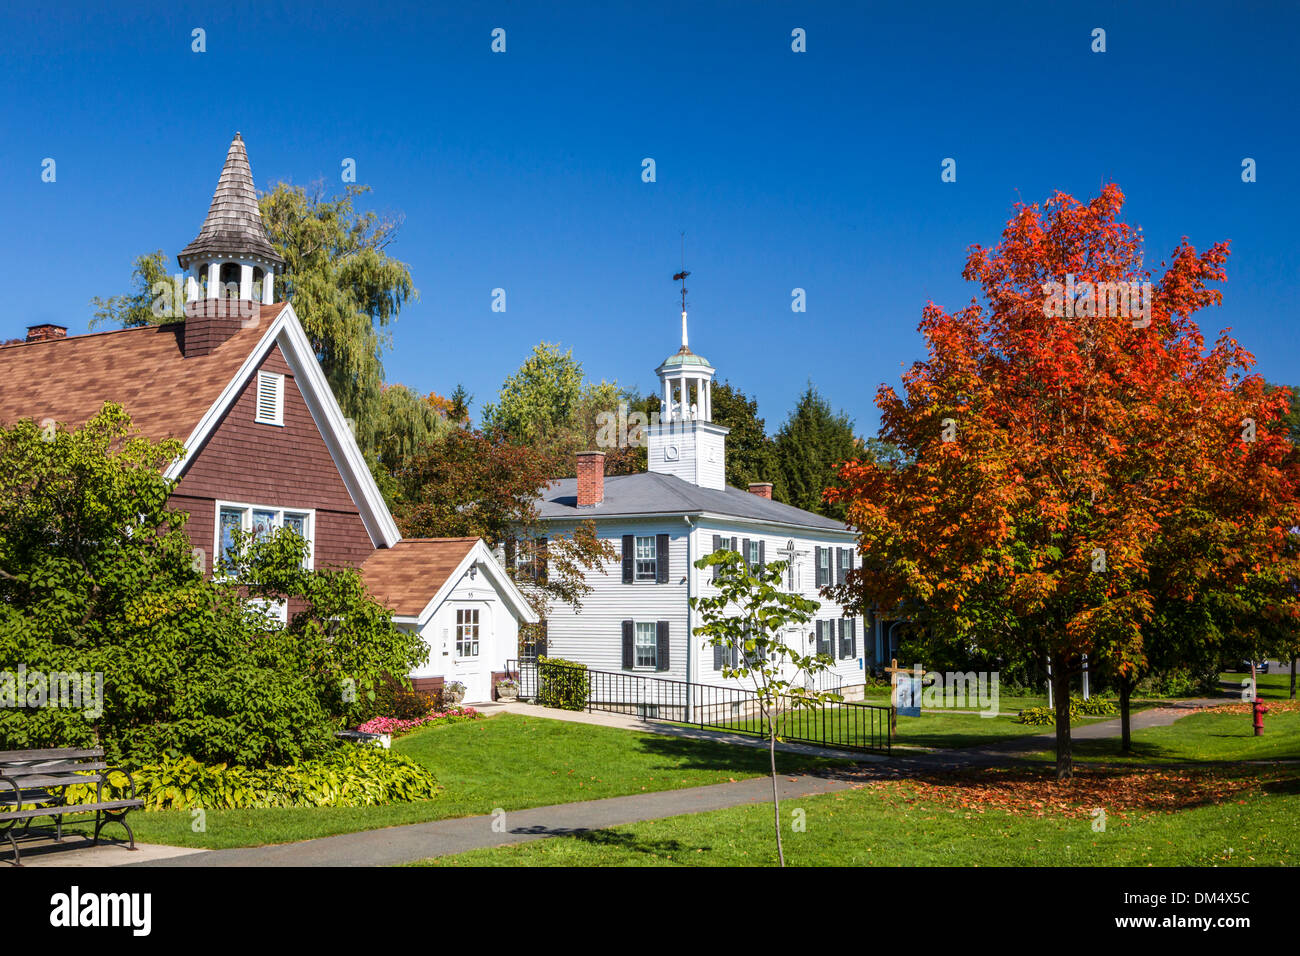 Autumn Berkshire Usa United States America Colourful House Stock